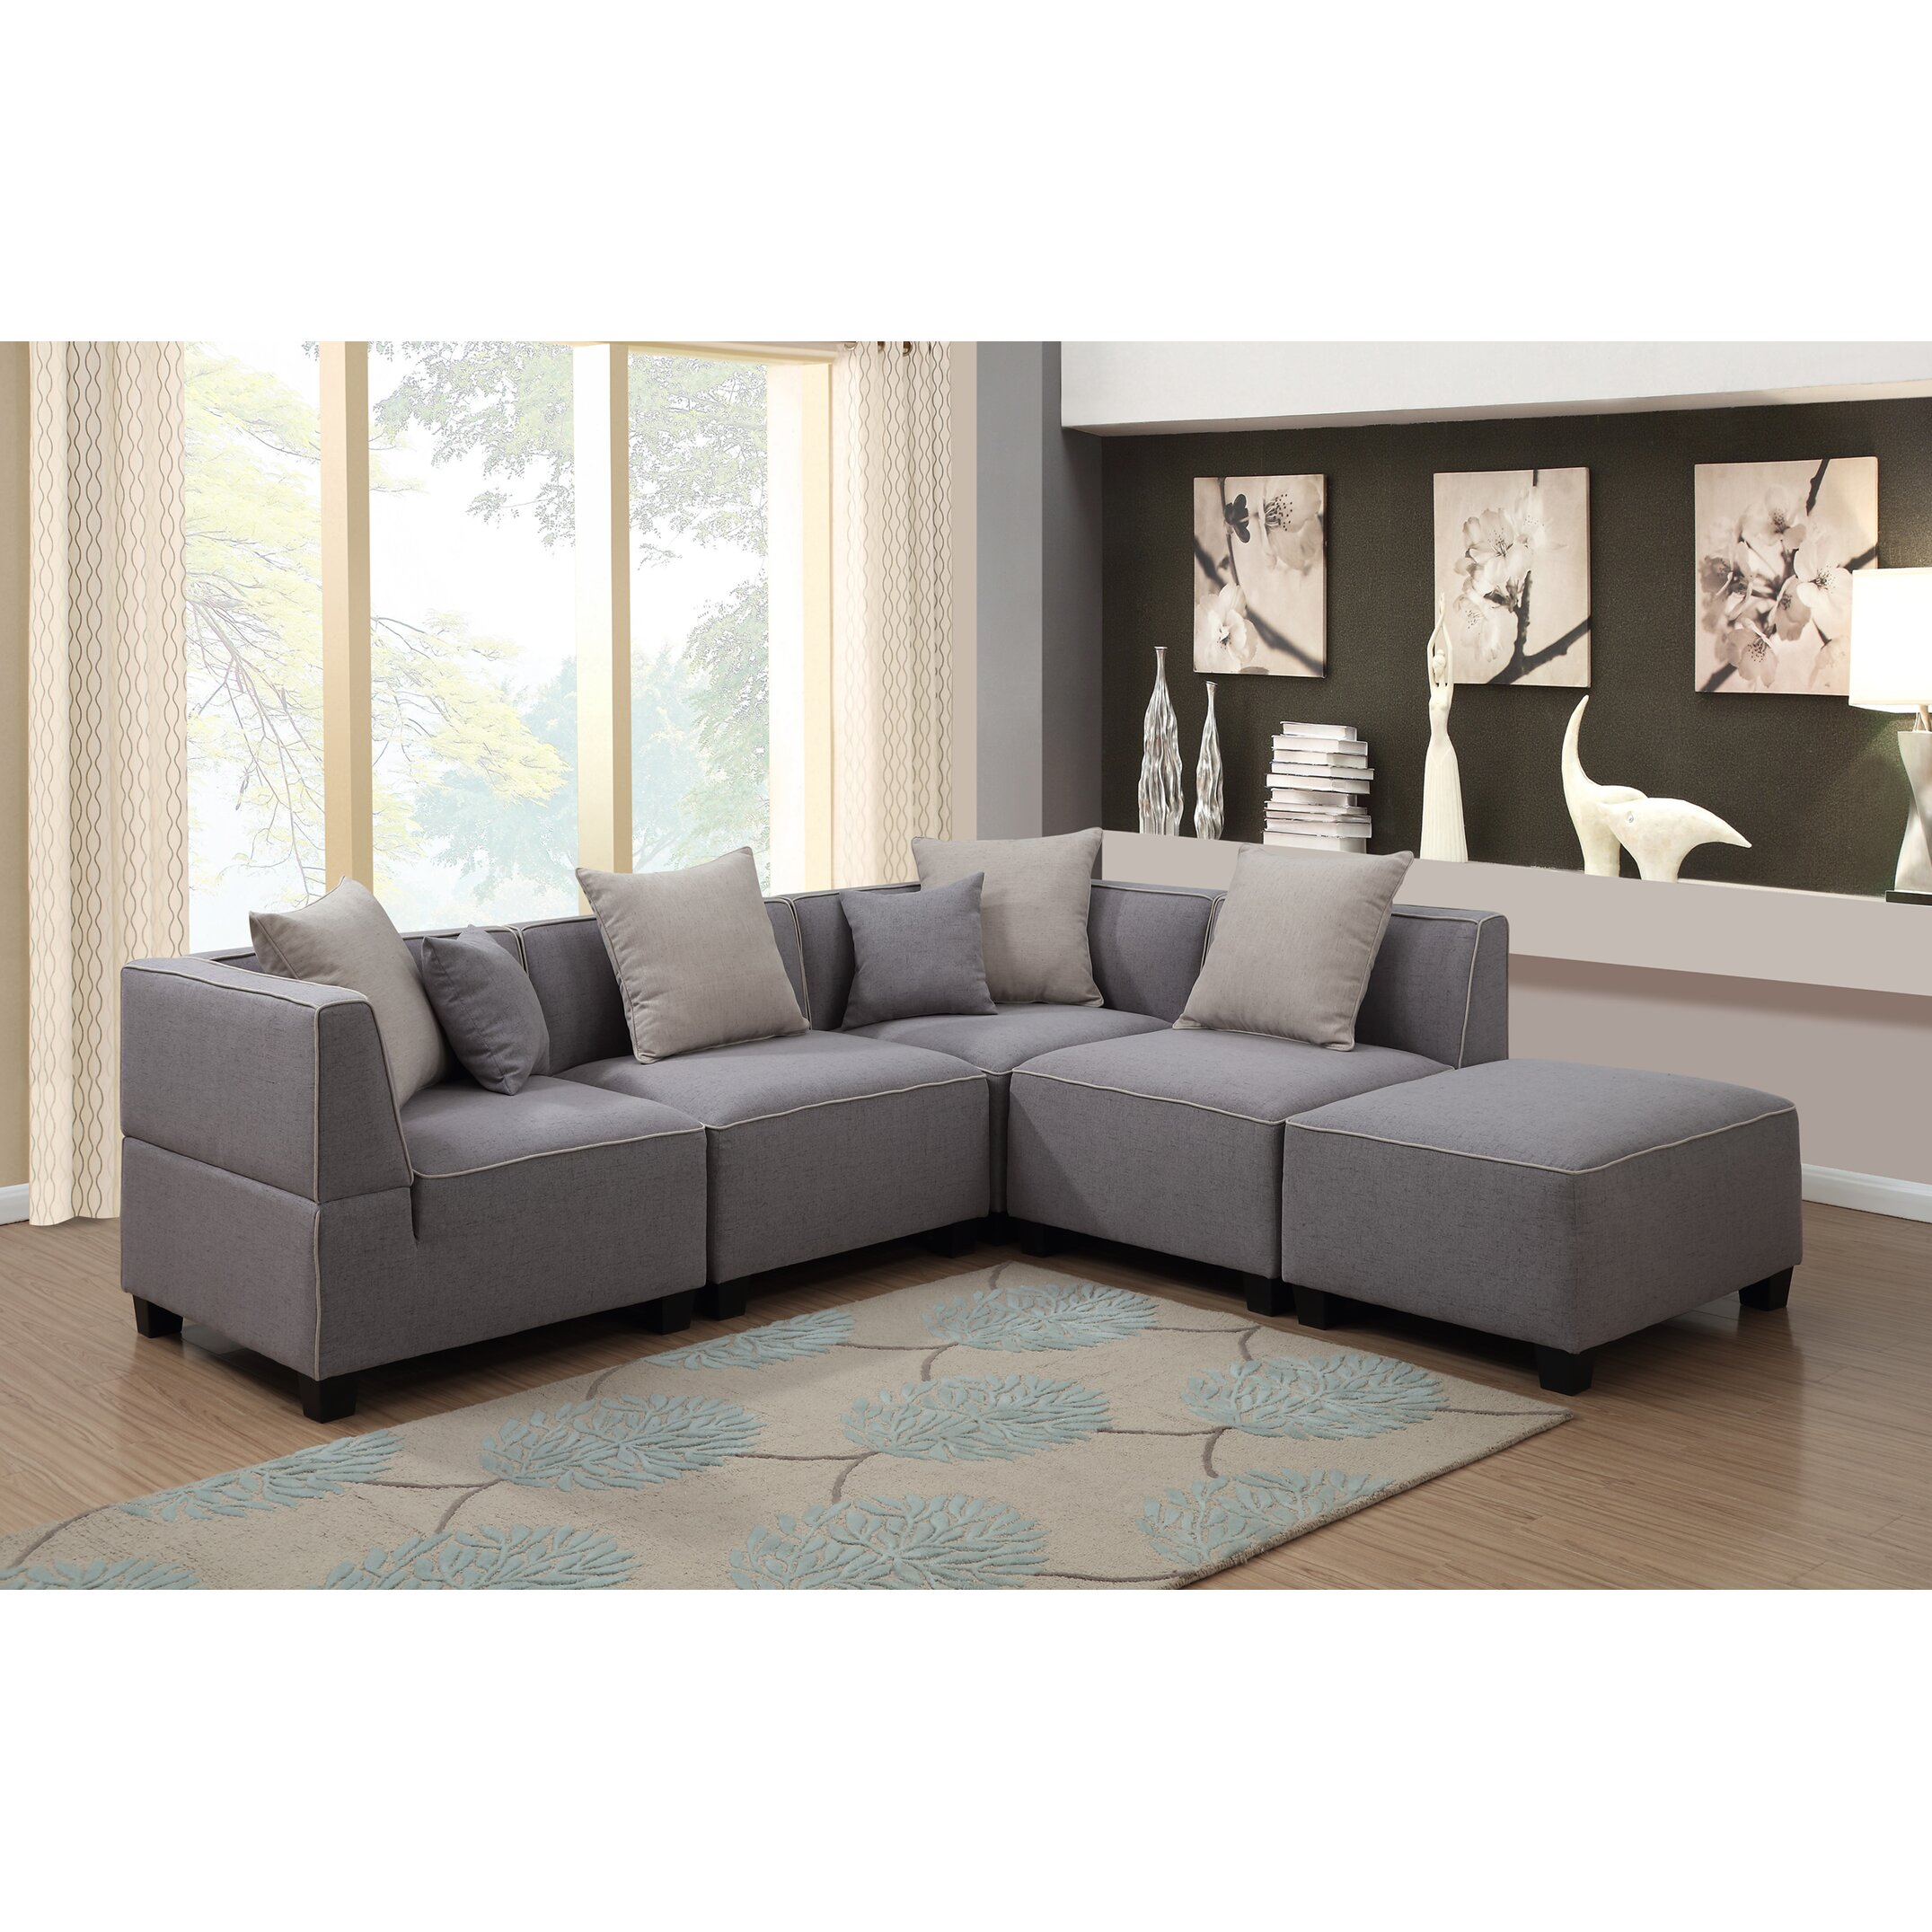 AC Pacific Holly Modern 5 Piece Tuxedo L Shaped Modular Sectional JYQ1718